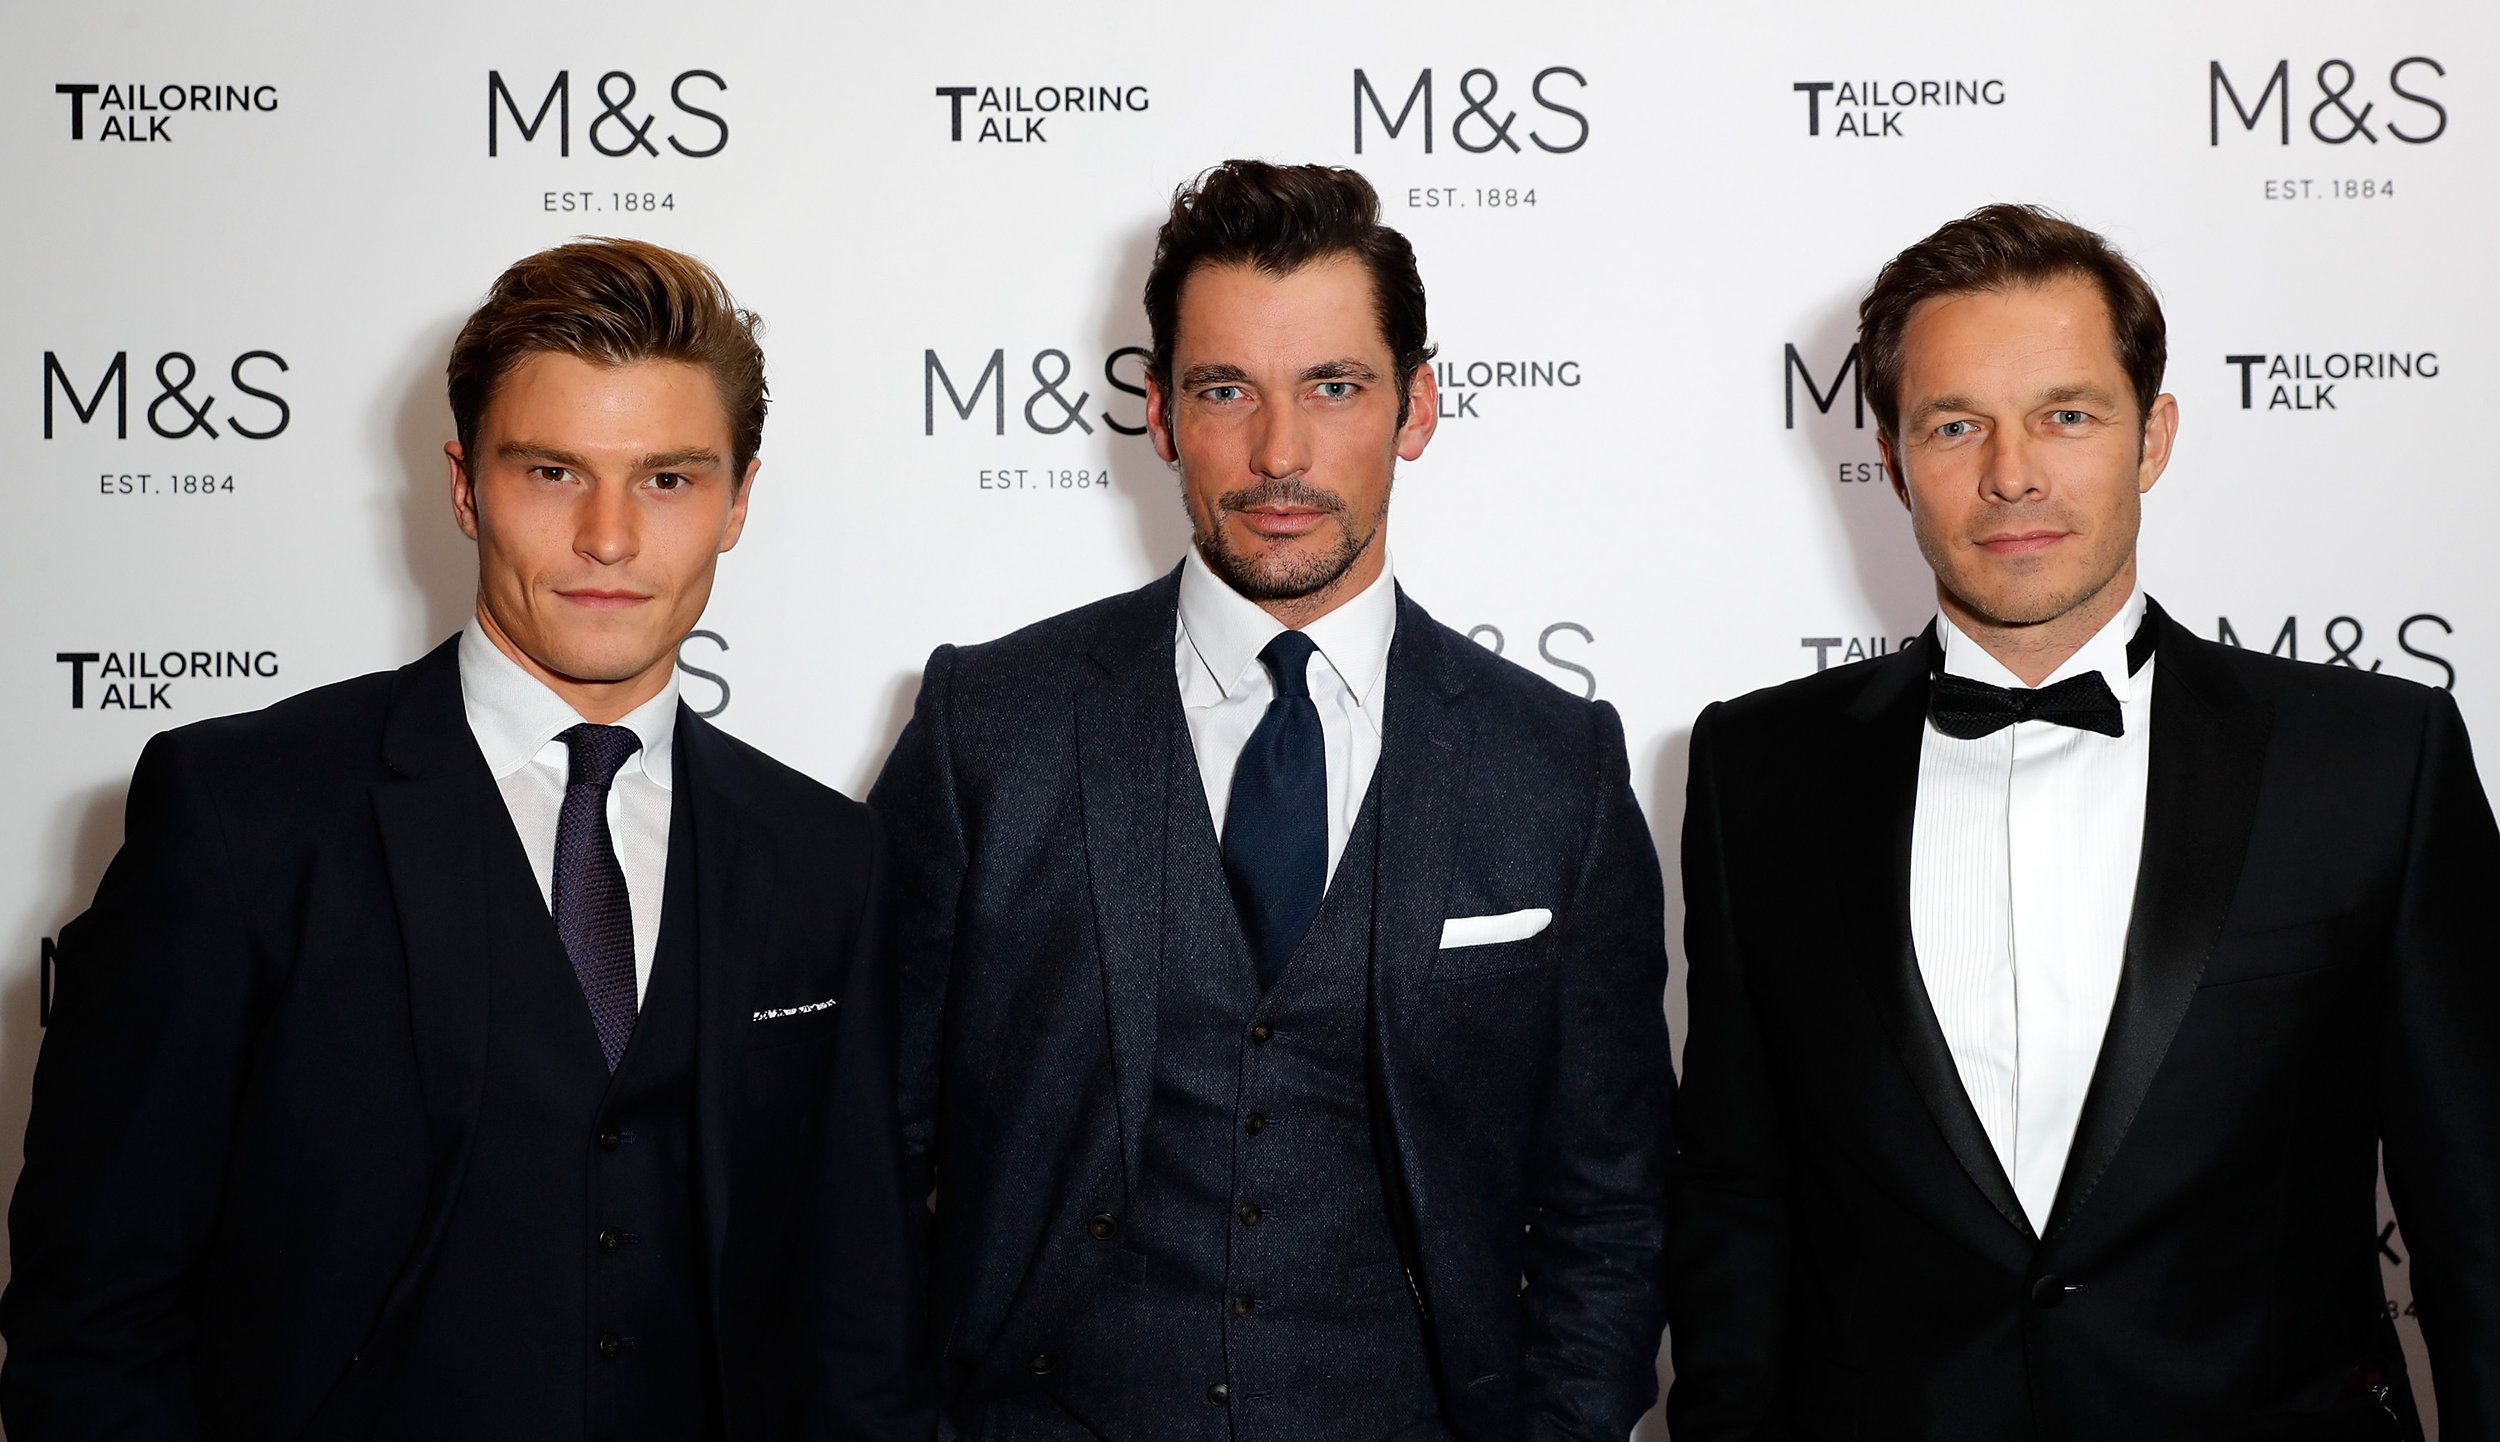 M&S Tailoring Talk AW17- Oliver Cheshire, David Gandy and Paul Sculfor 2 copy.jpg